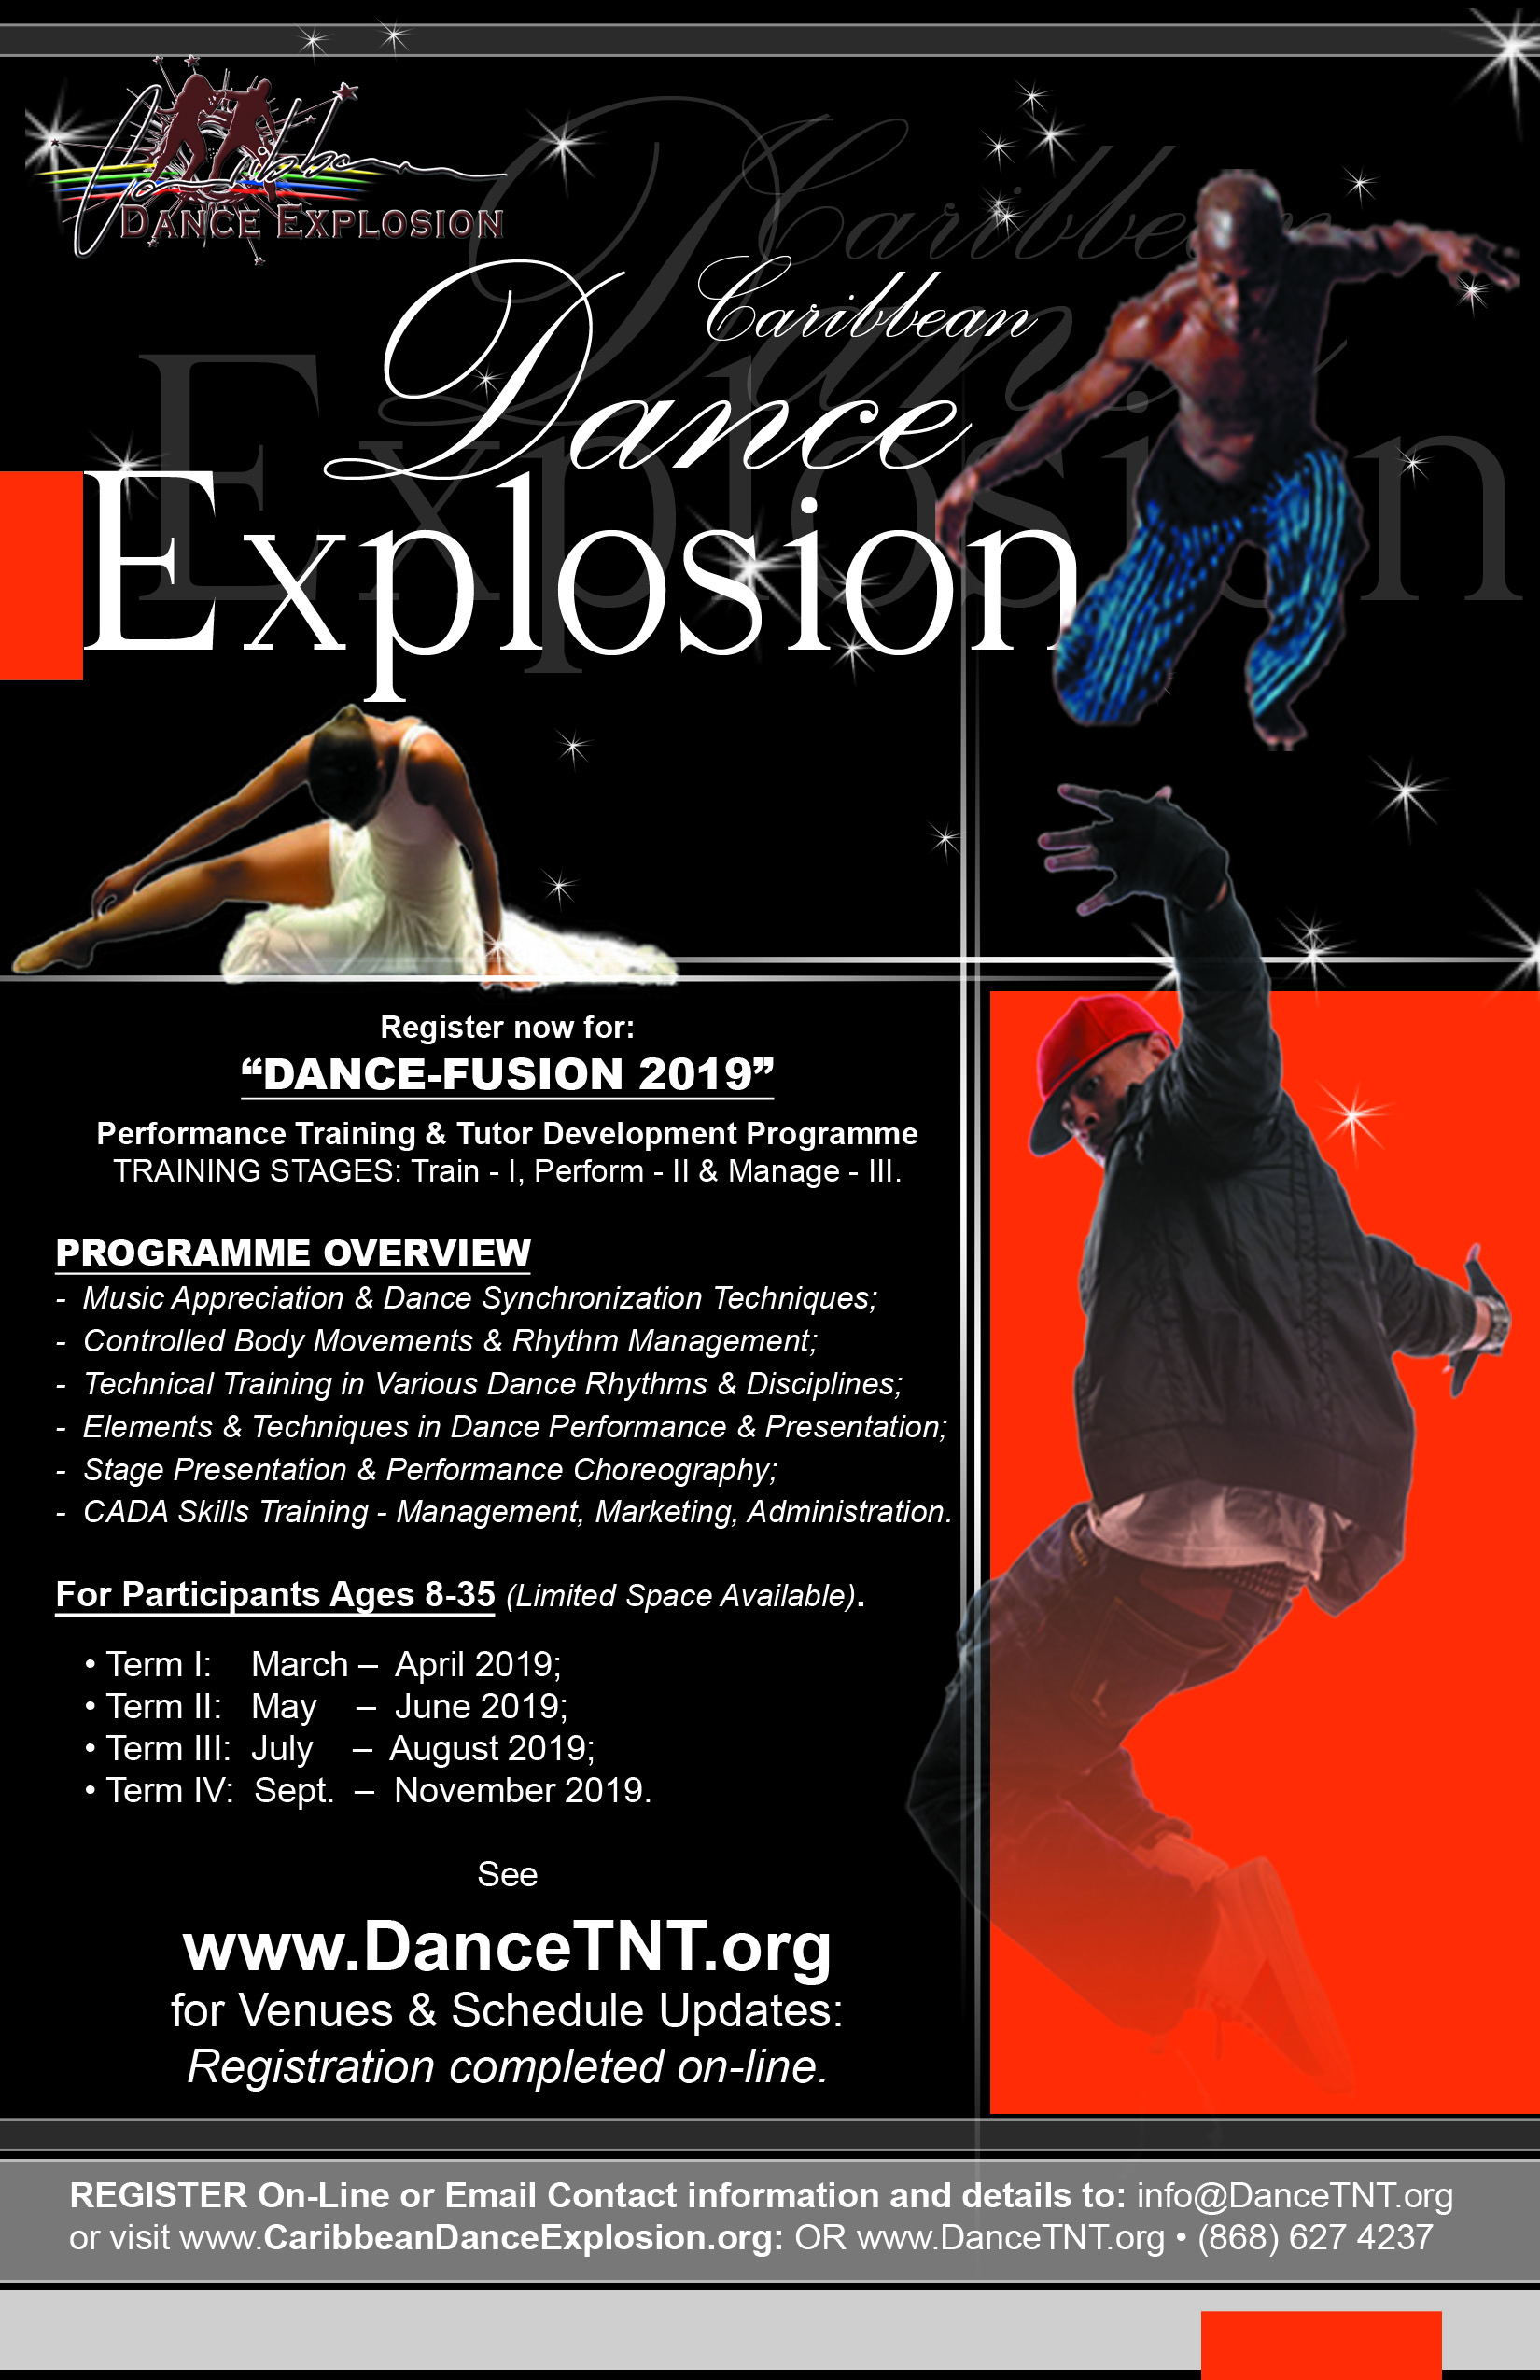 Dance Fusion Performance Training Programme